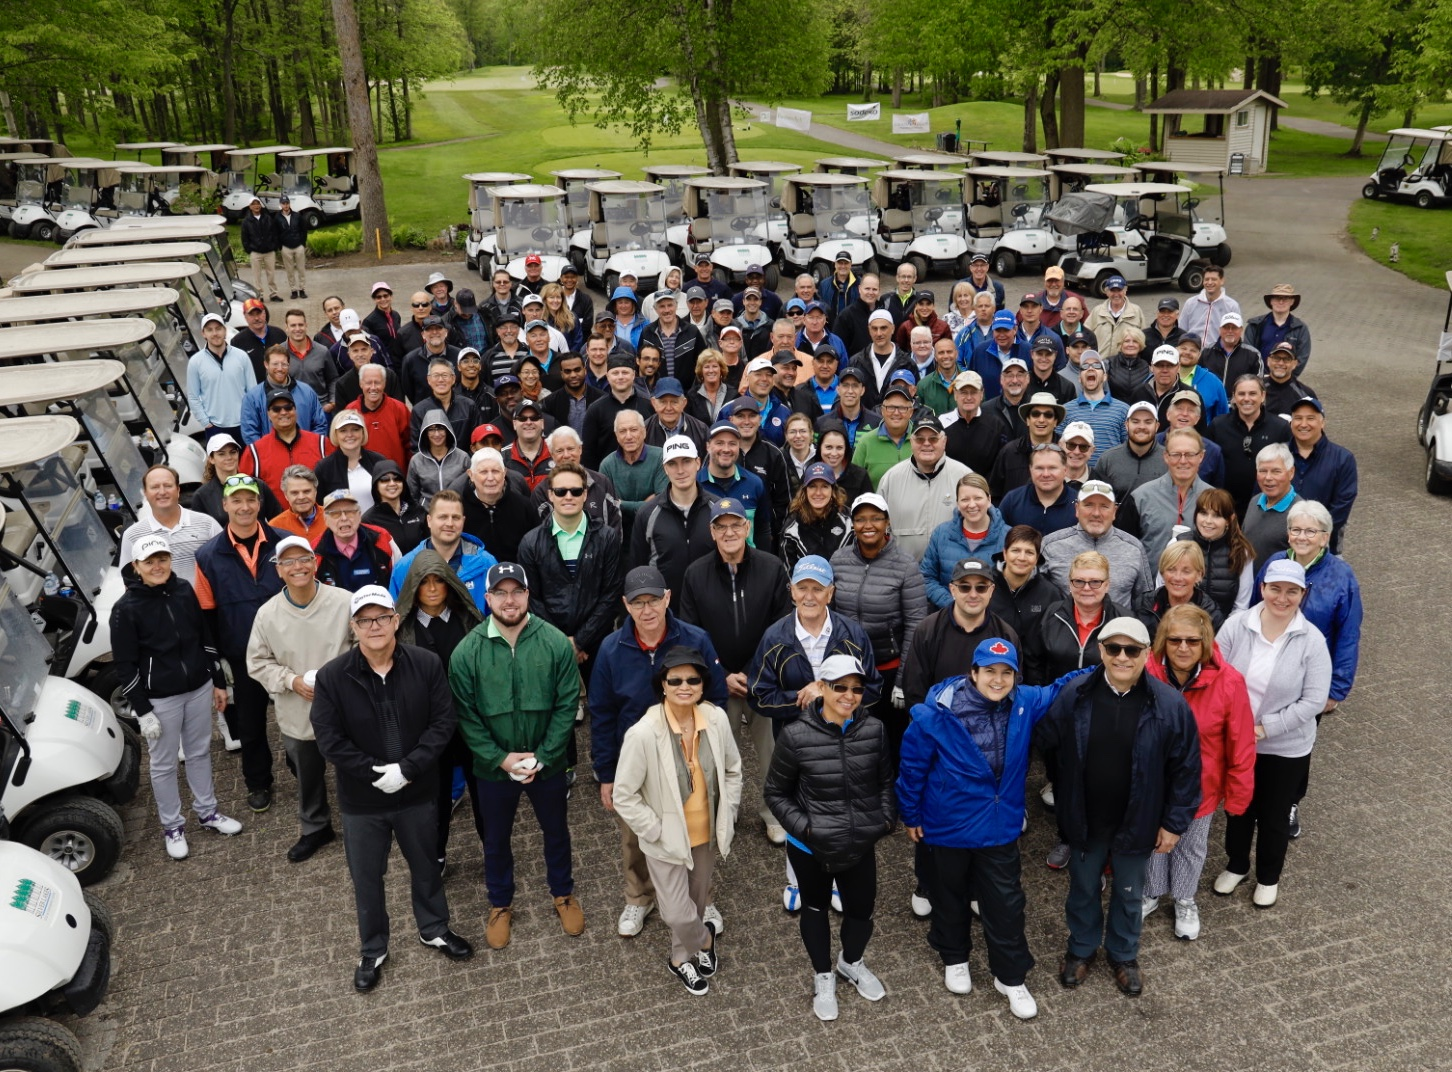 2018 Golf Tournament Participants